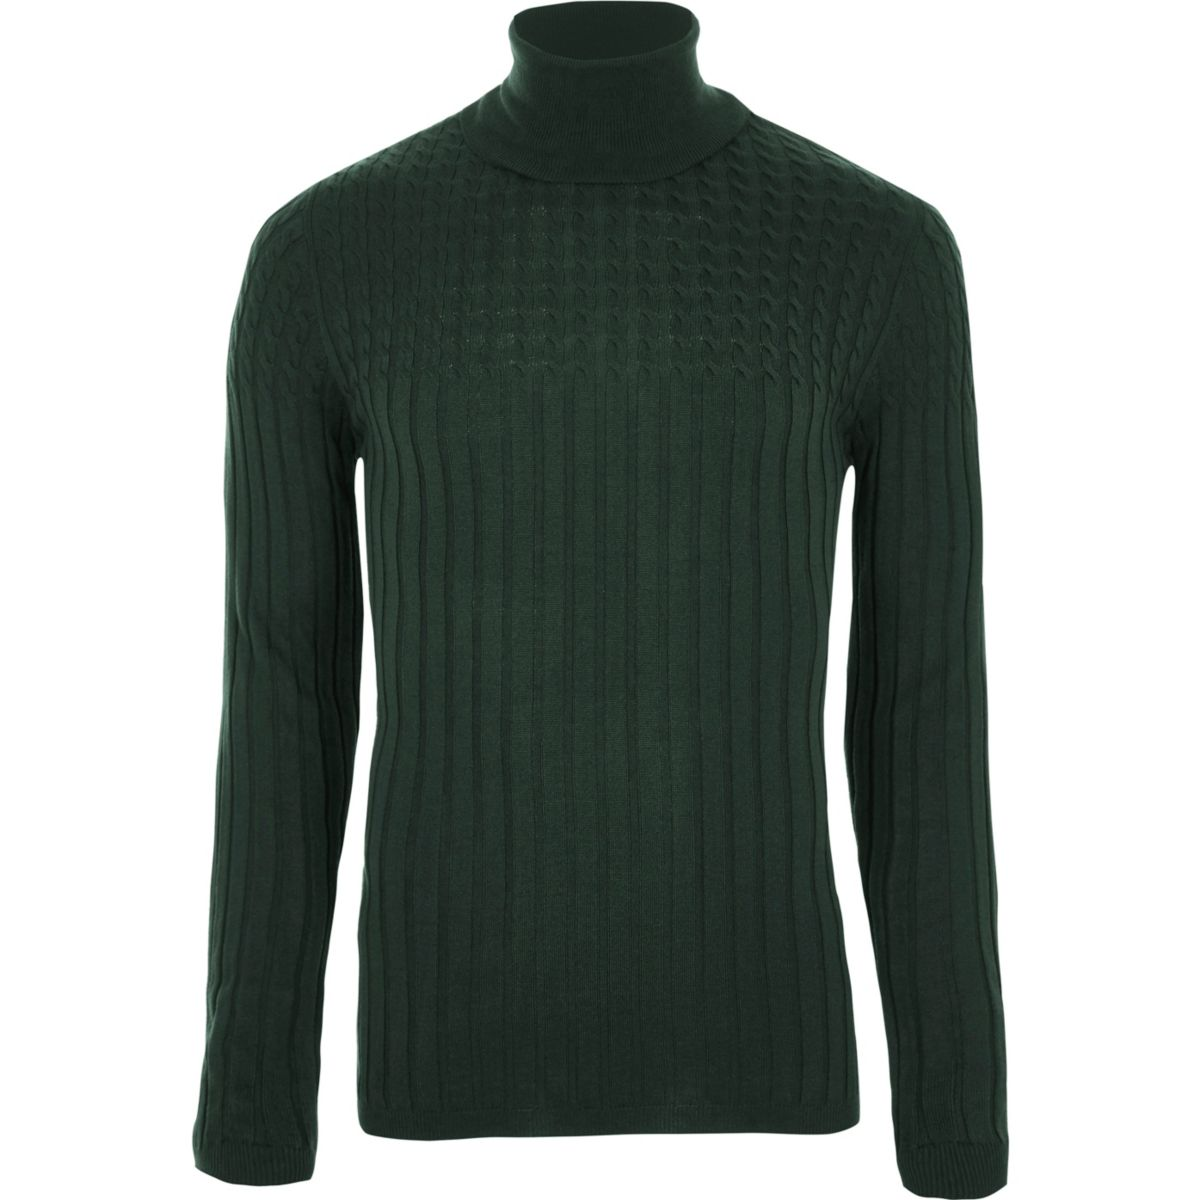 Dark green cable knit roll neck muscle sweater